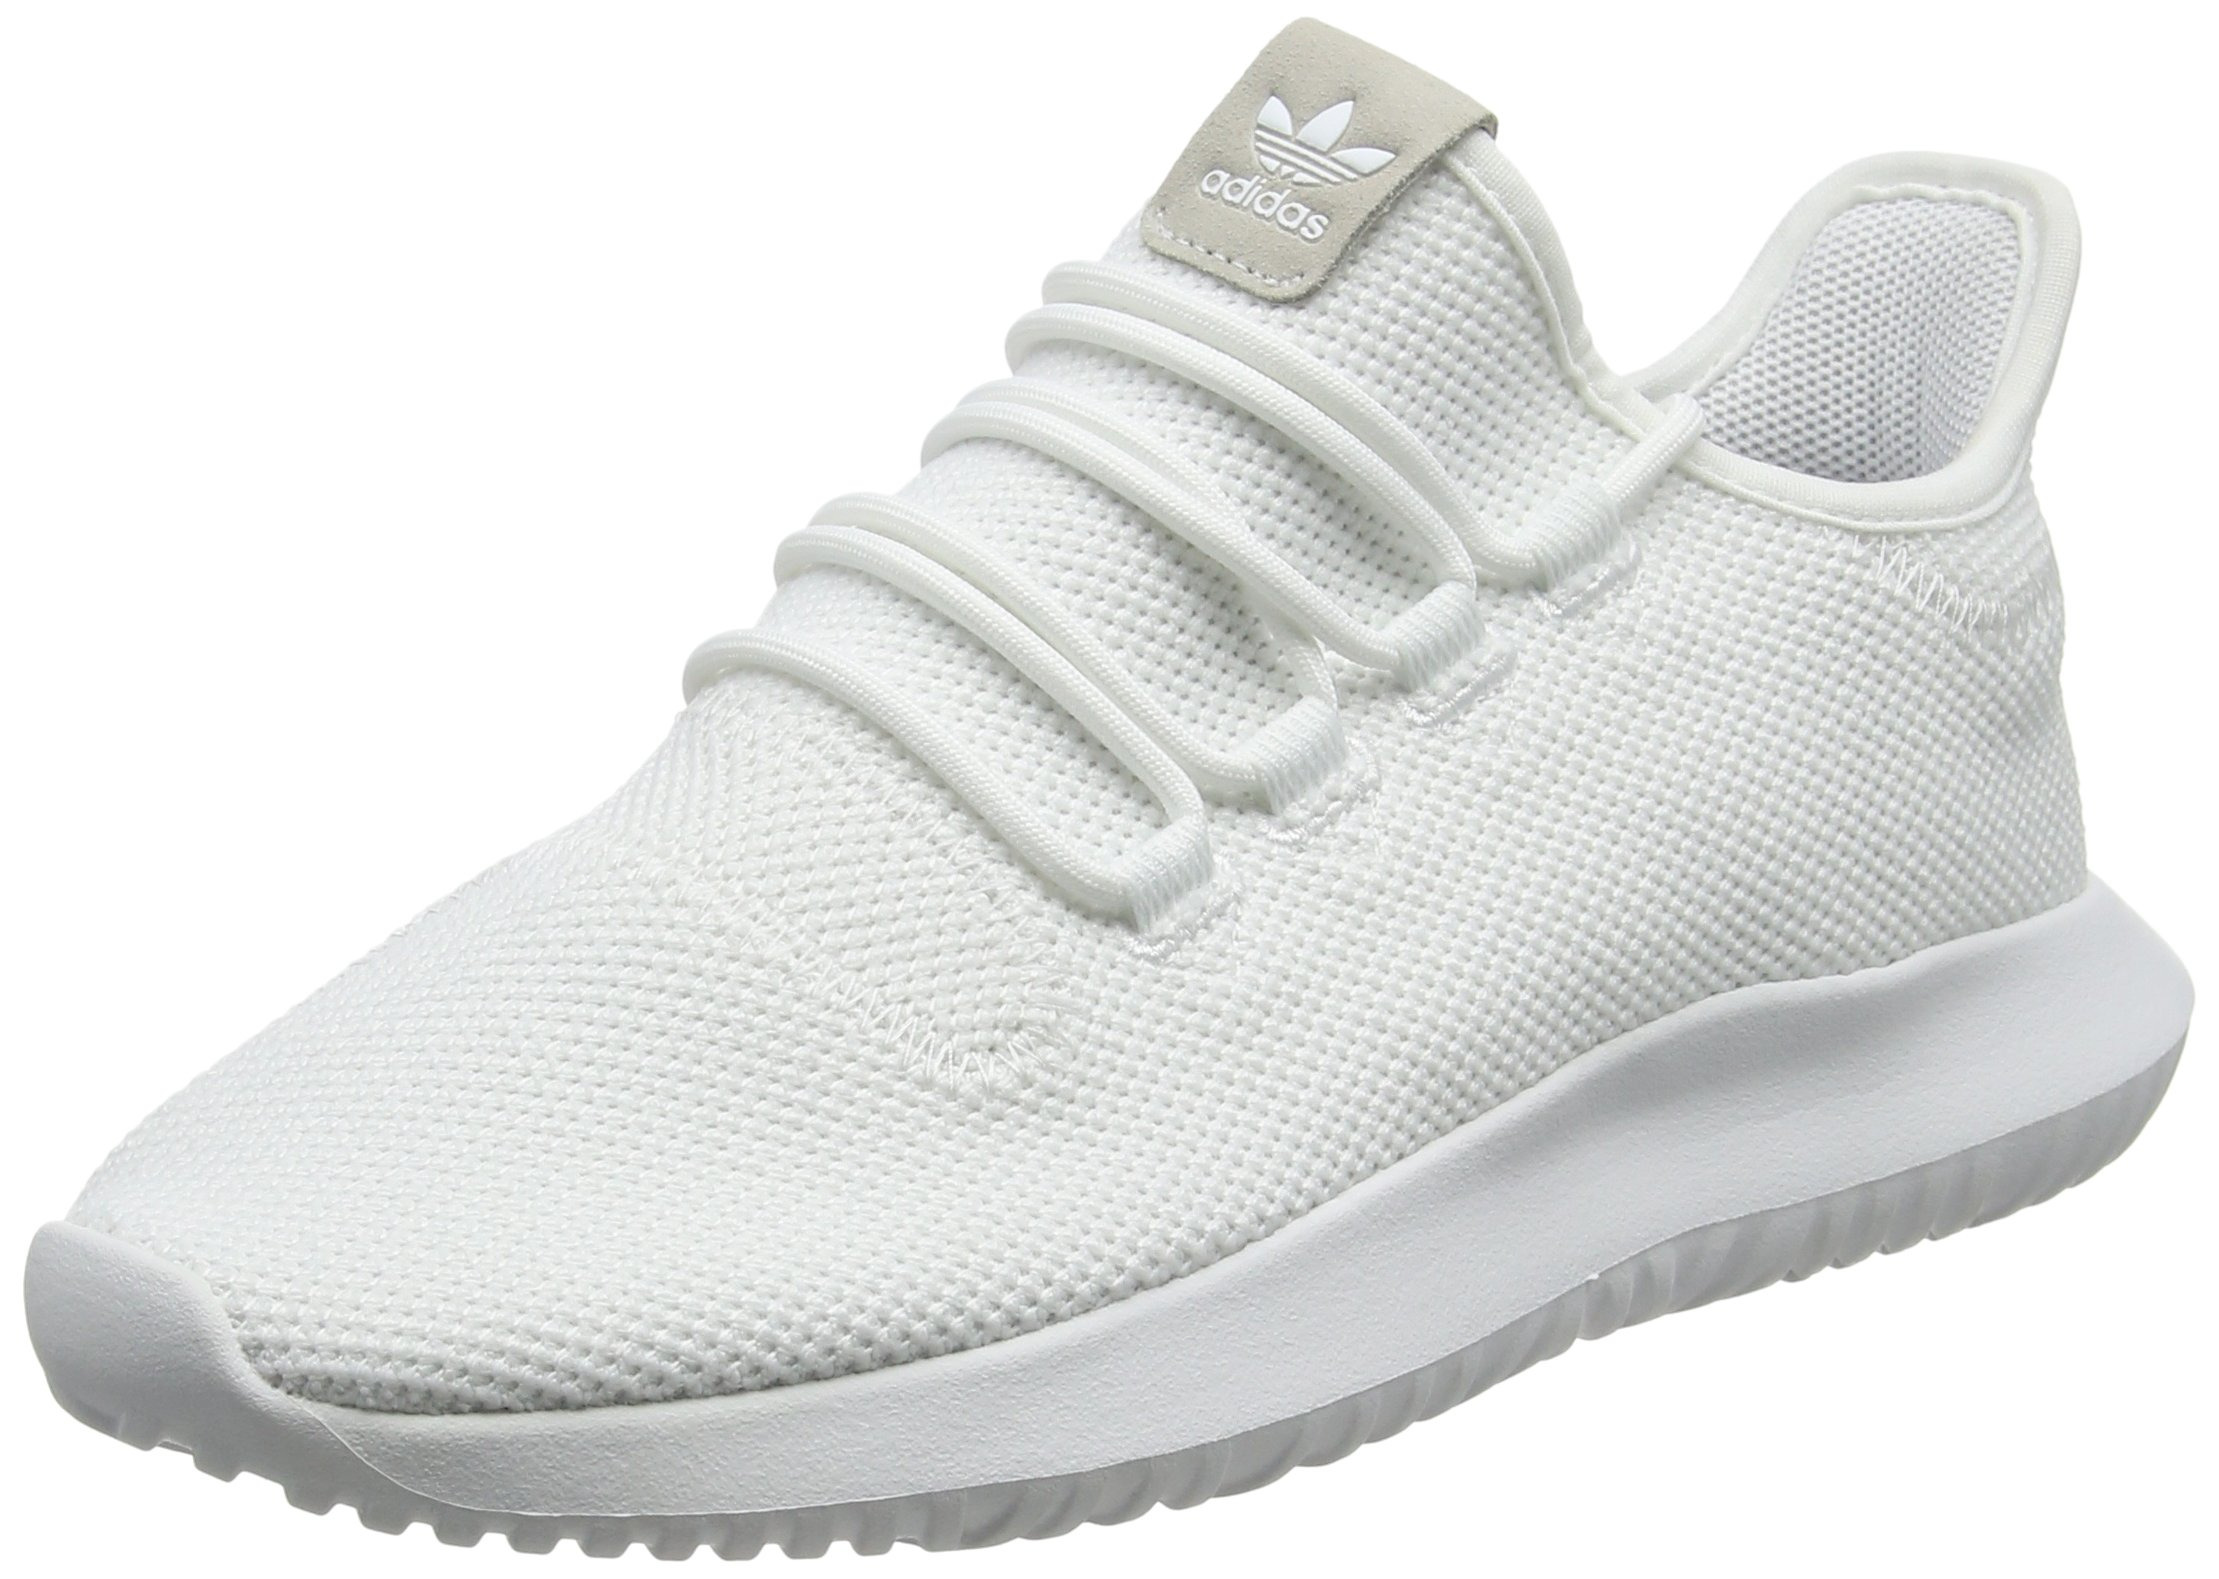 Adidas - Tubular Shadow - CG4563 - Color: White - Size: 10.5 by adidas